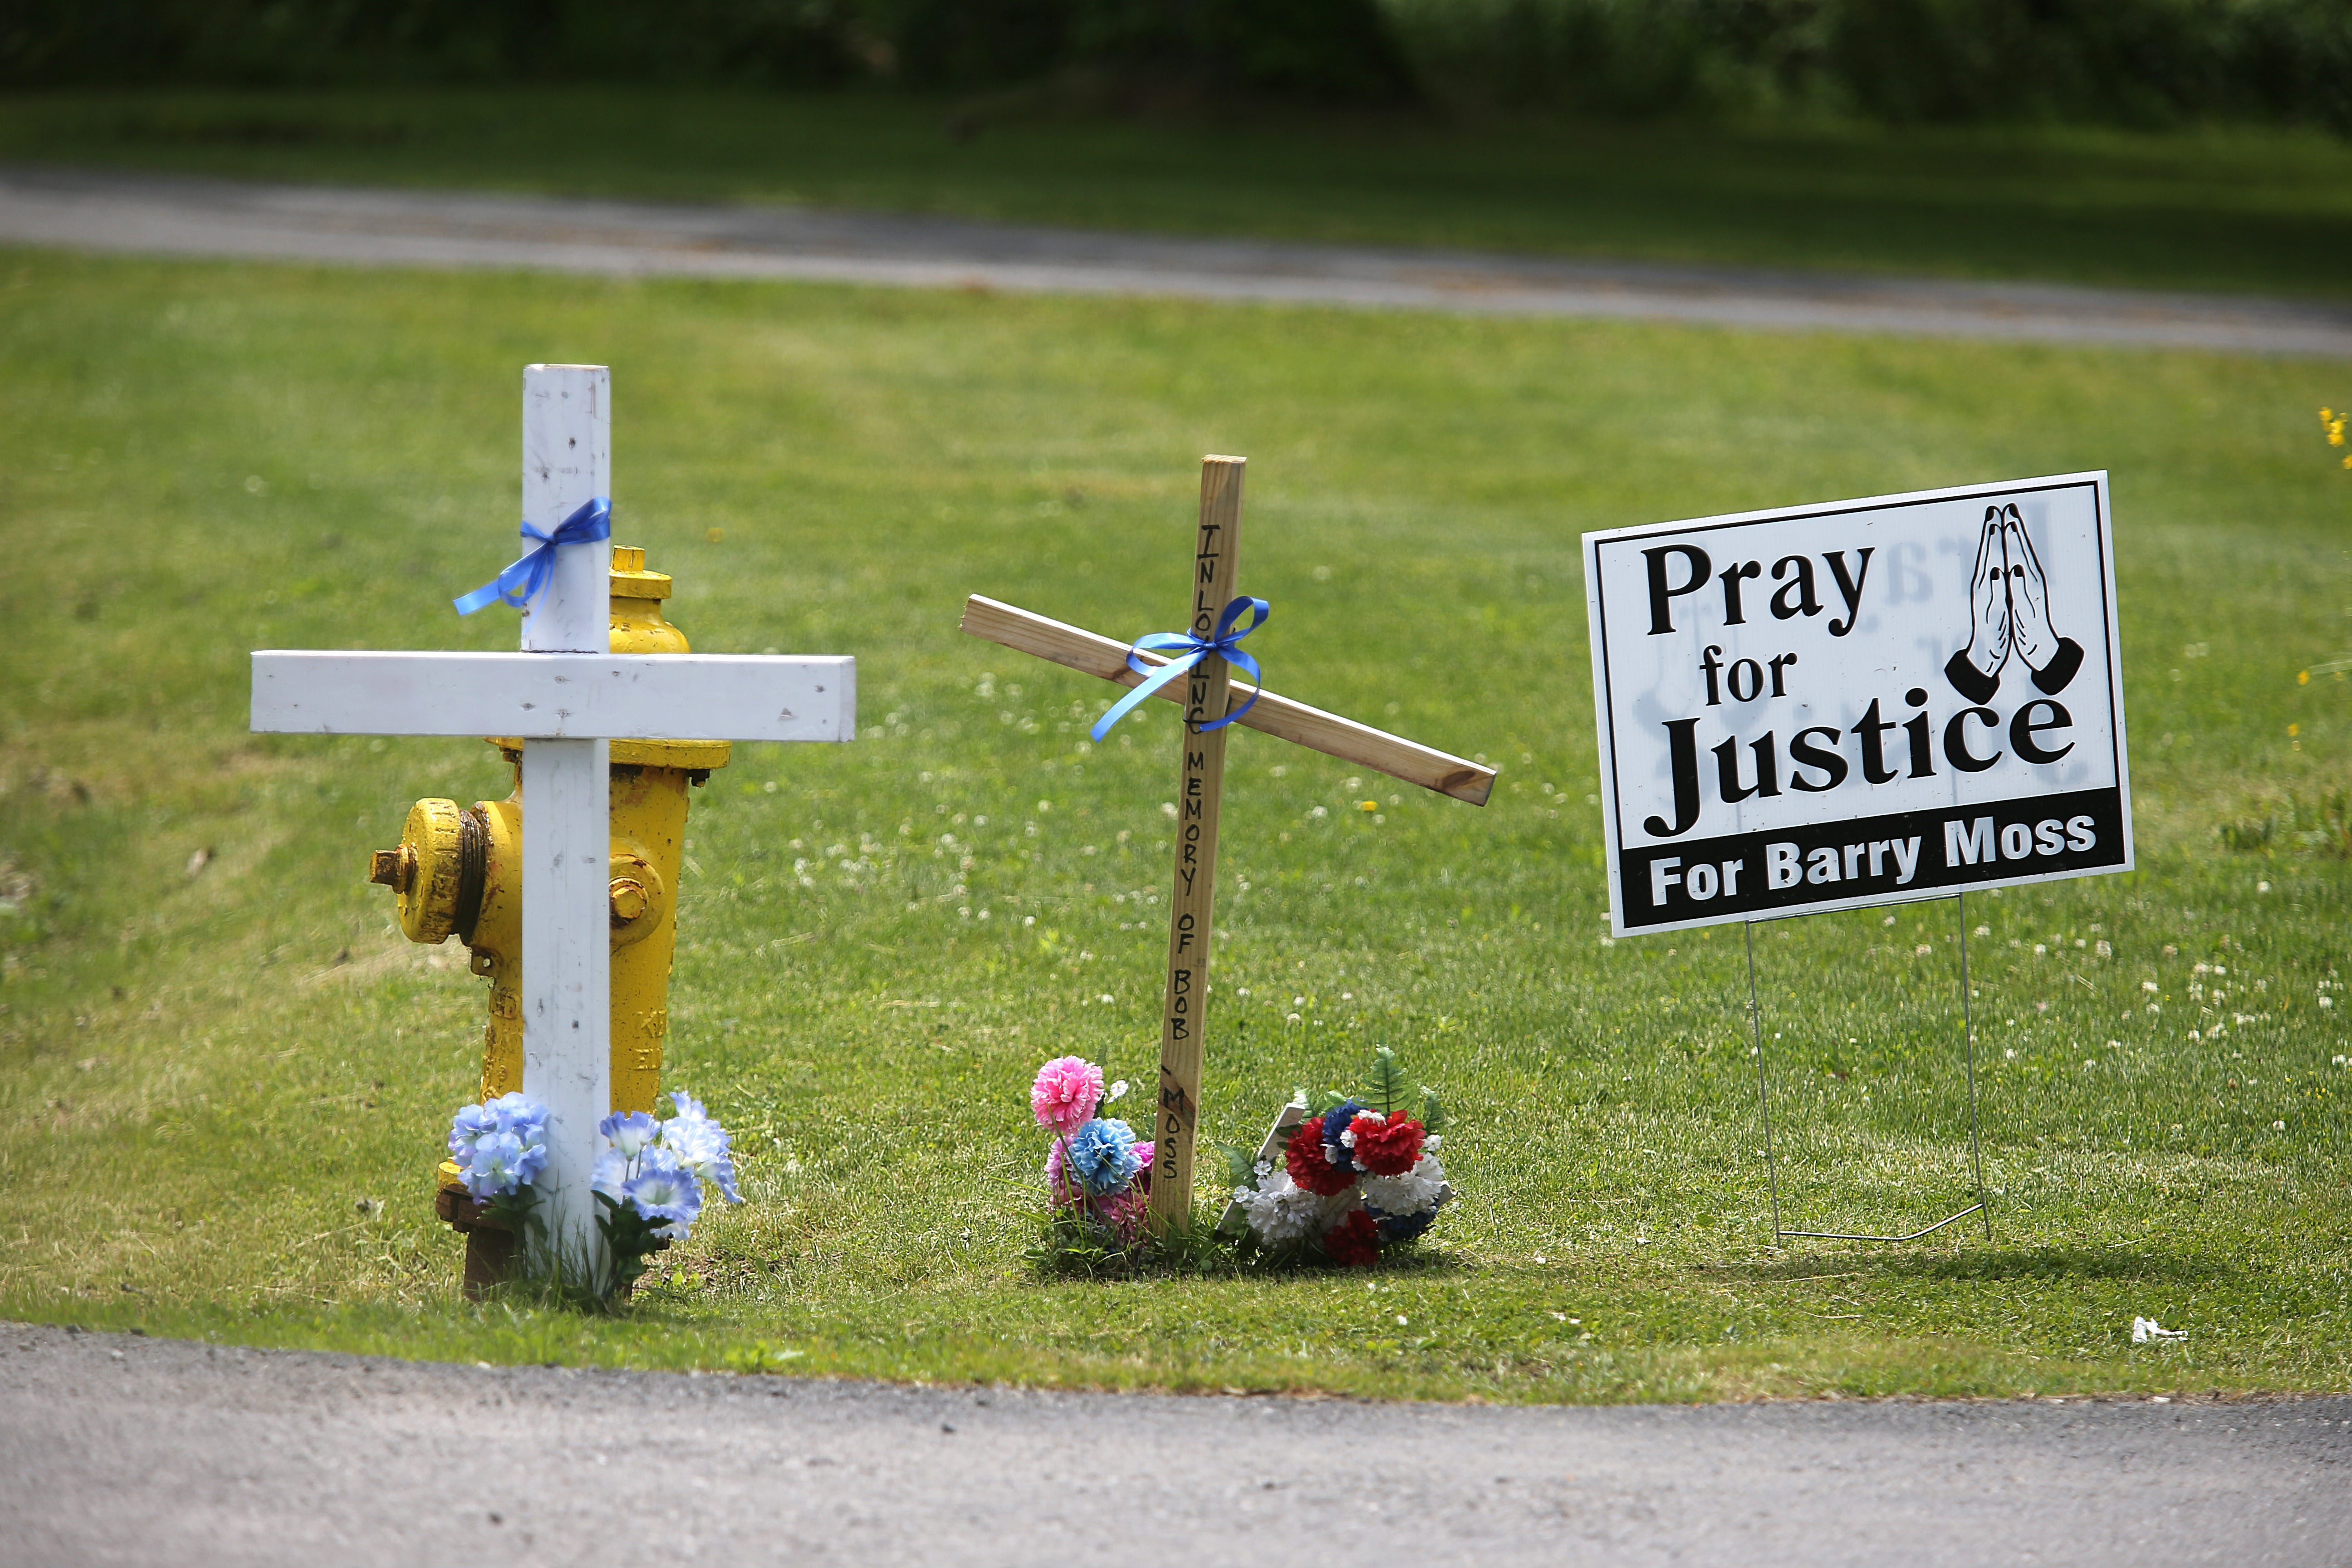 A memorial for Barry Moss, who was struck and killed by a vehicle on Rt. 5 near Gold St. in Evans.  (Charles Lewis/Buffalo News)